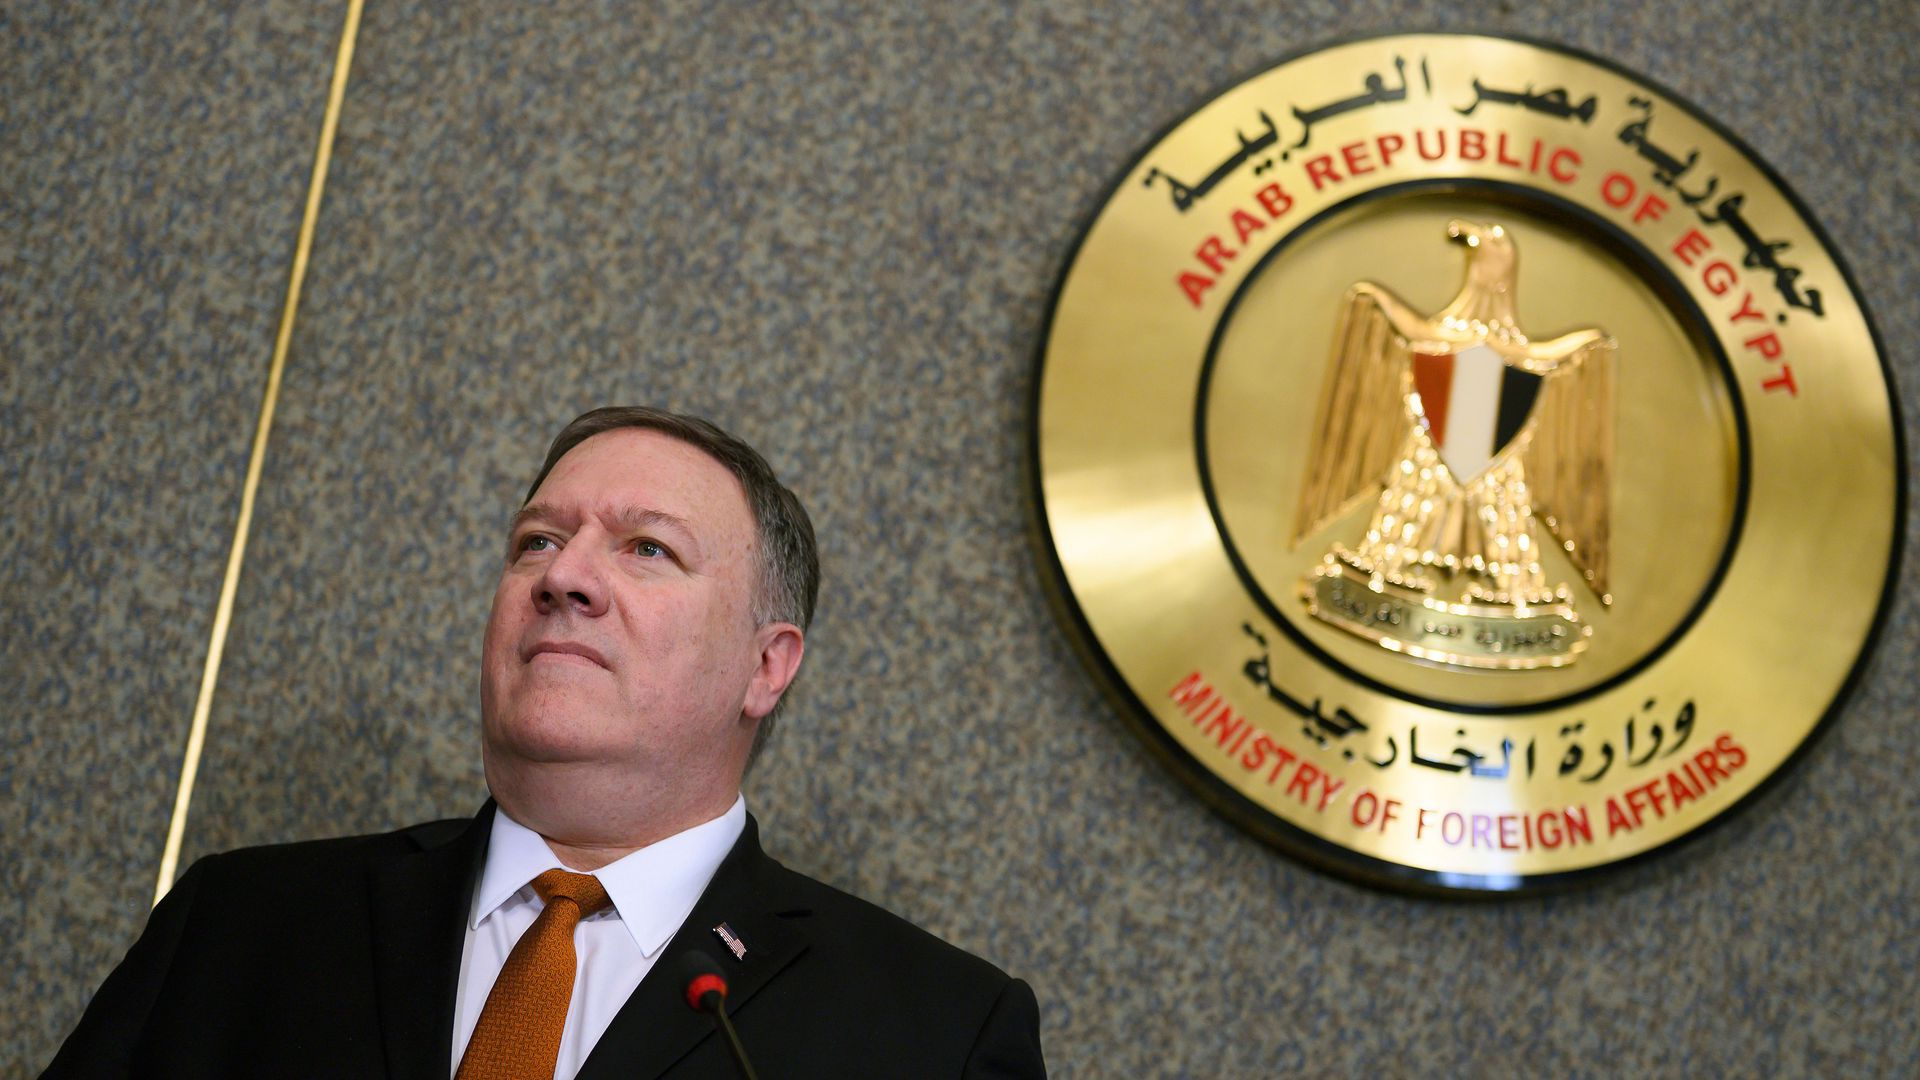 US Secretary of State Mike Pompeo holds a joint press conference with his Egyptian counterpart following their meeting at the ministry of foreign affairs in Cairo on January 10, 2019.